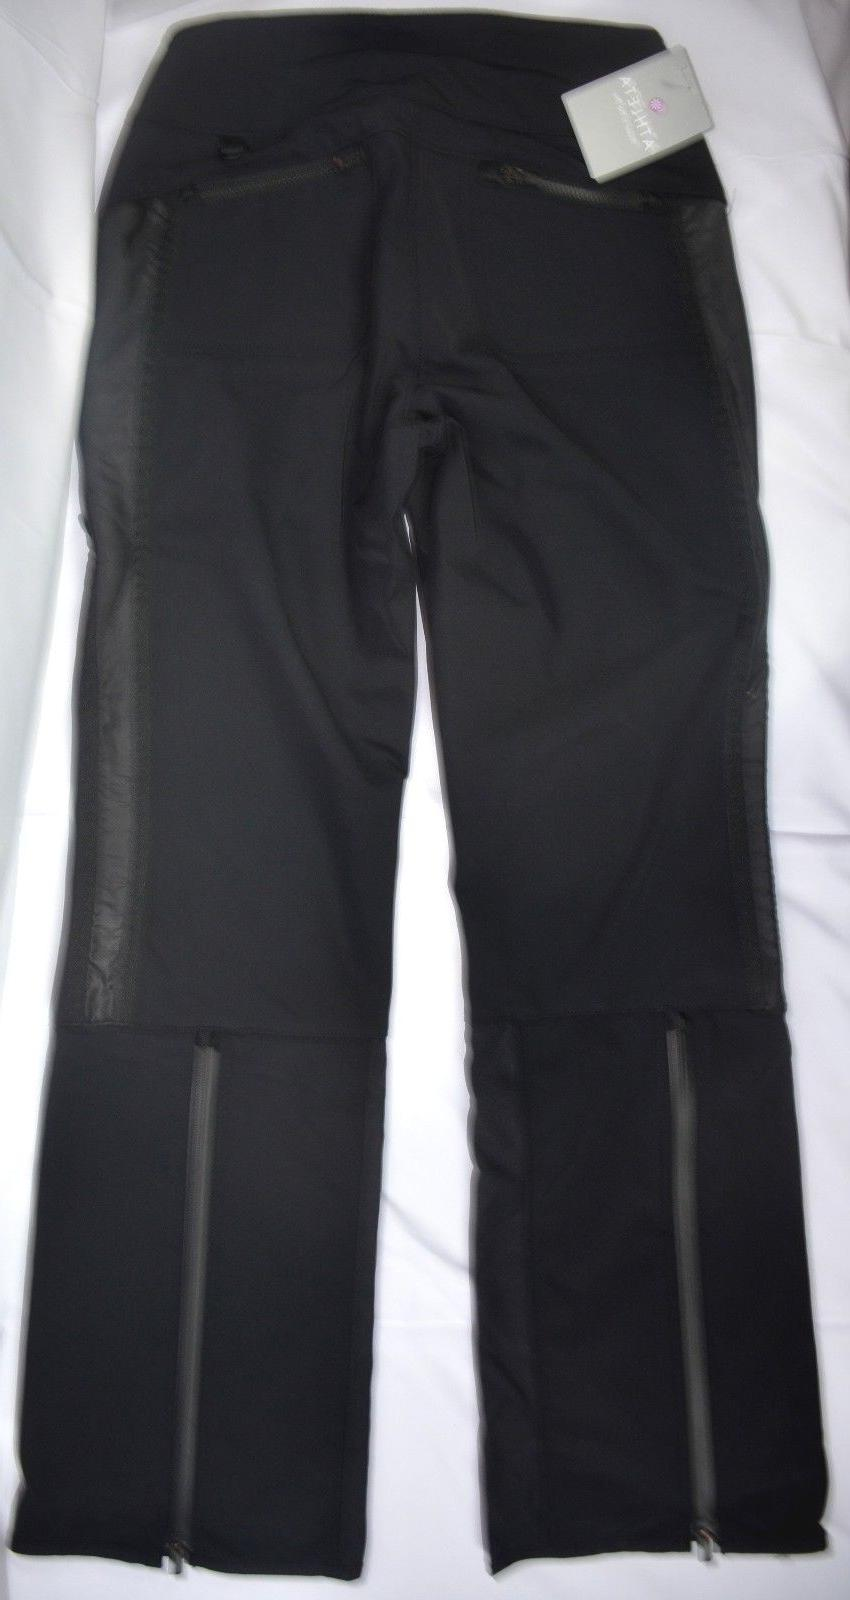 NWT Athleta $198 Black Sold Out 10T